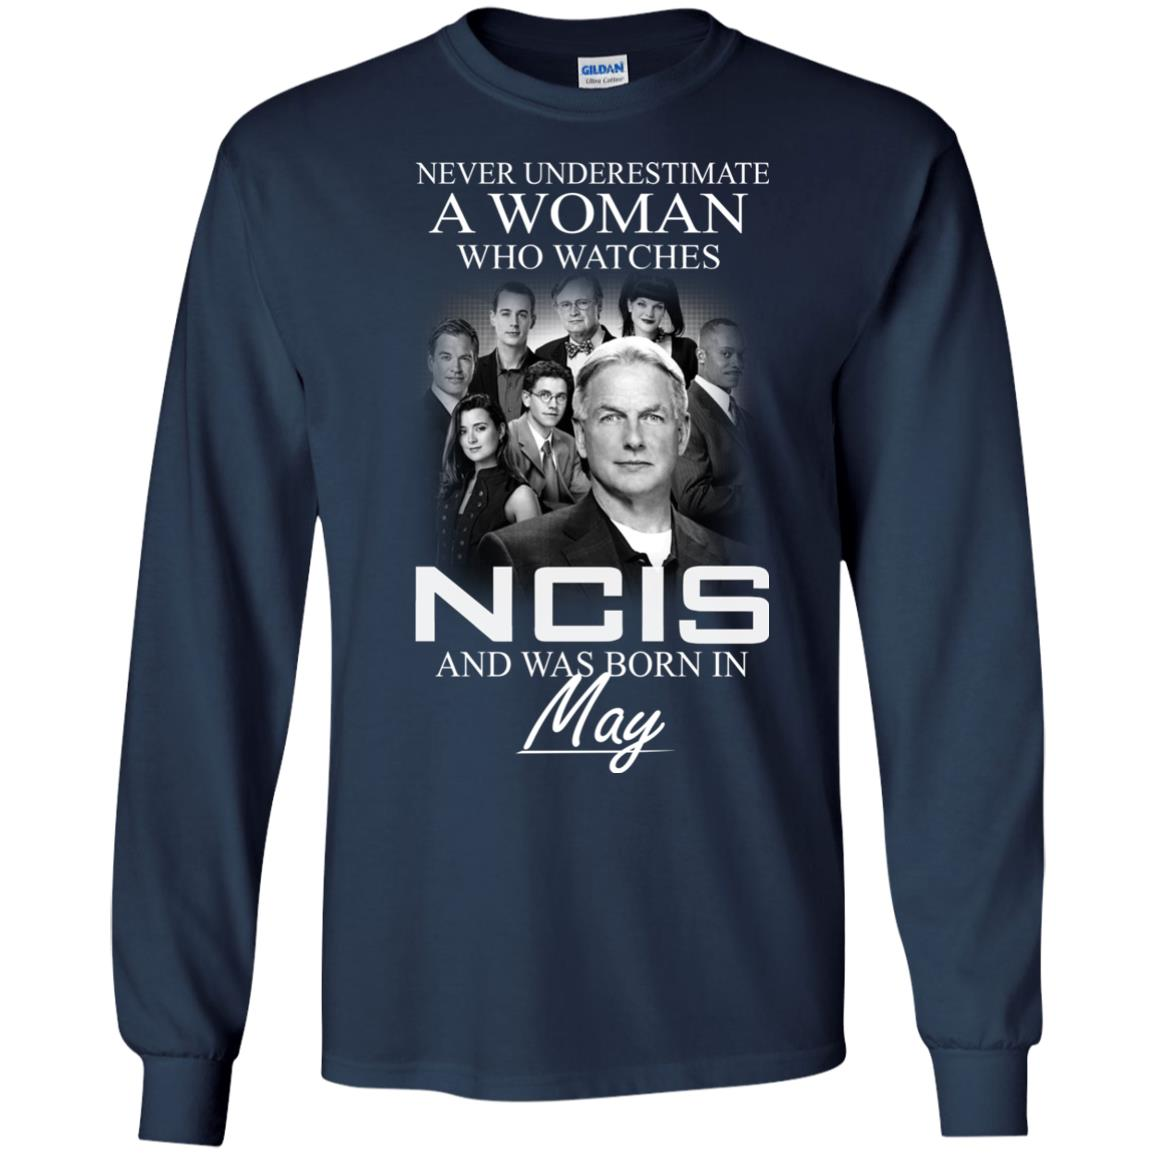 Never underestimate A Woman who watches NCIS and was born in May shirt - image 1185